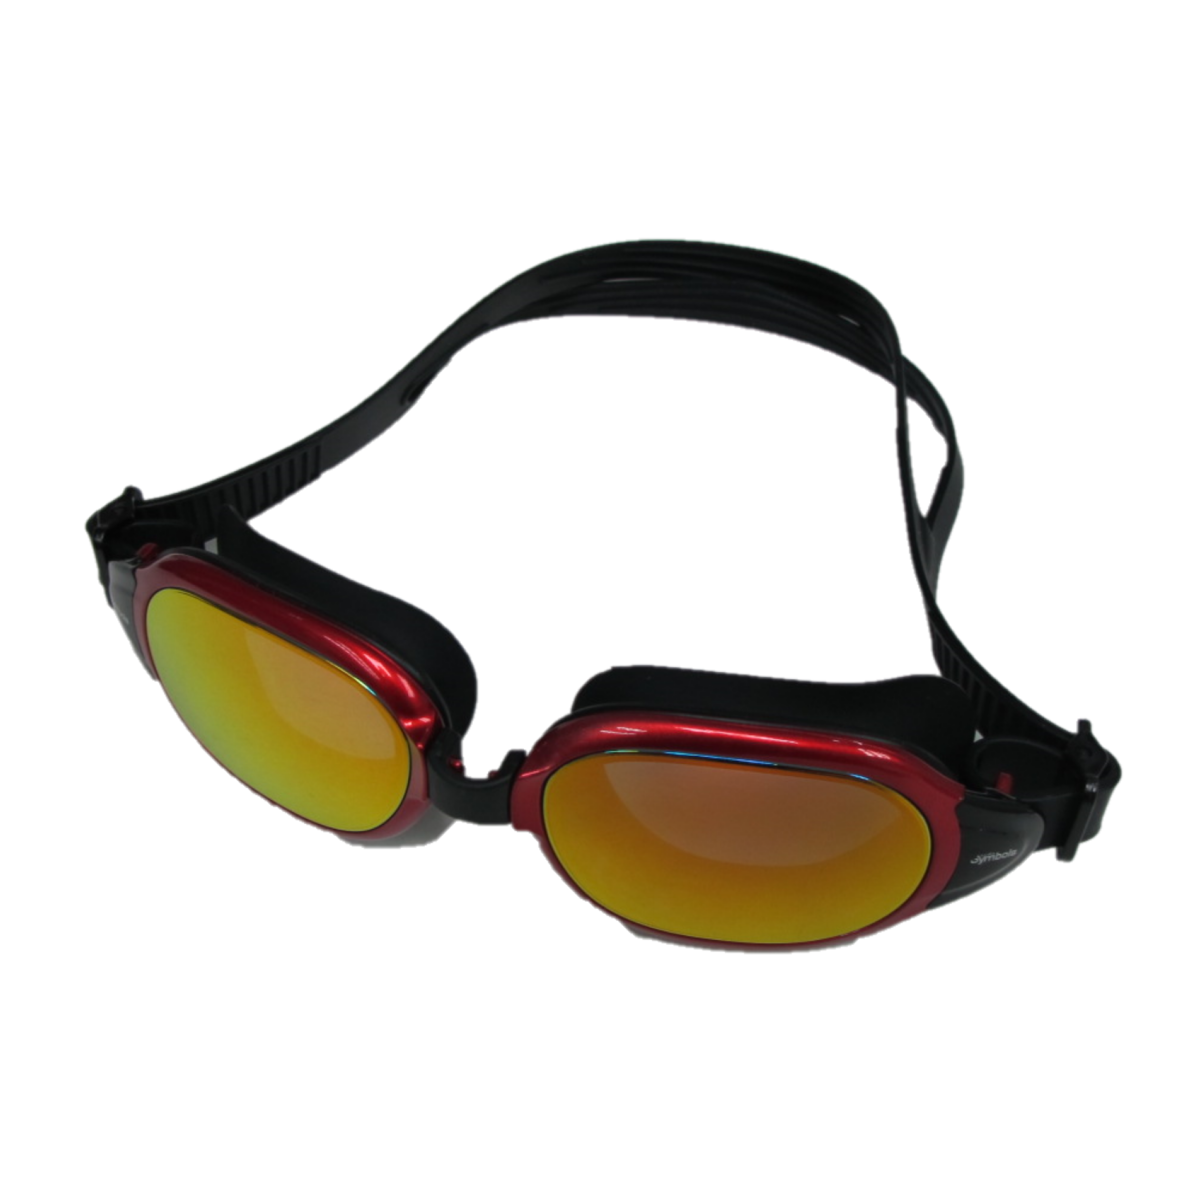 [MS-8700MR] High Quality Silicone Anti-Fog UV Protection Black/Red Reflective Swimming Goggles